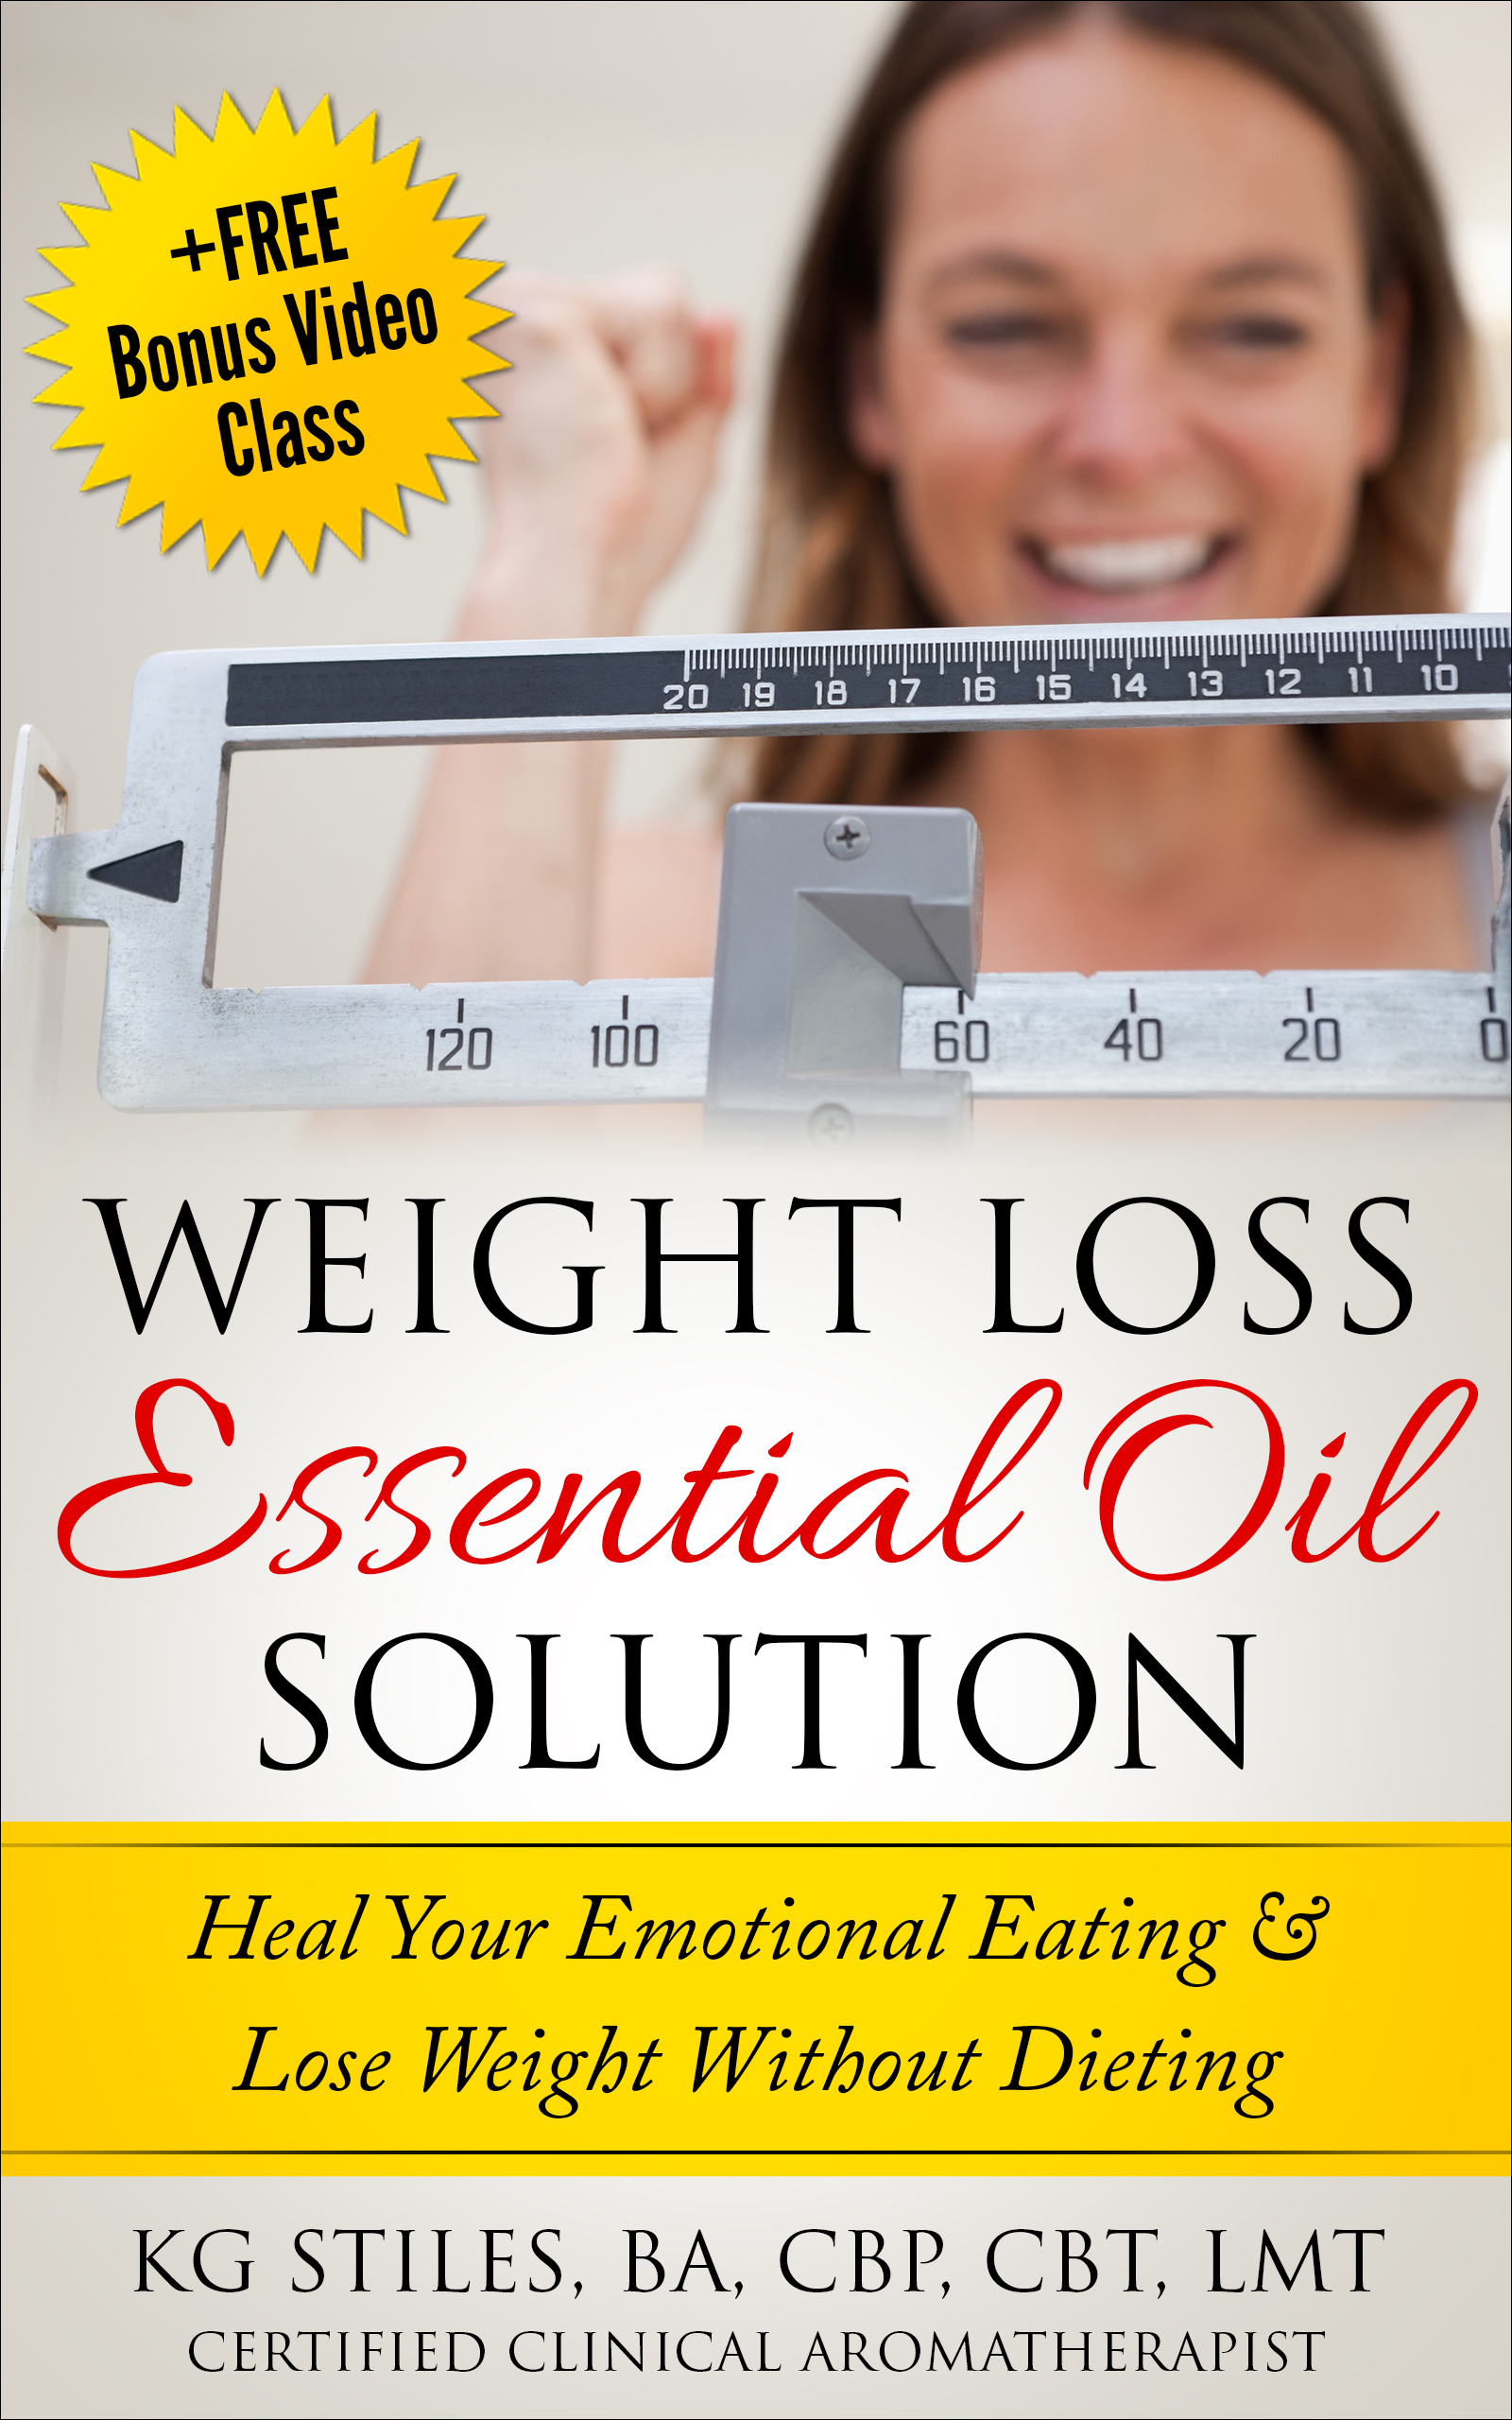 Weight Loss Essential Oil Solution